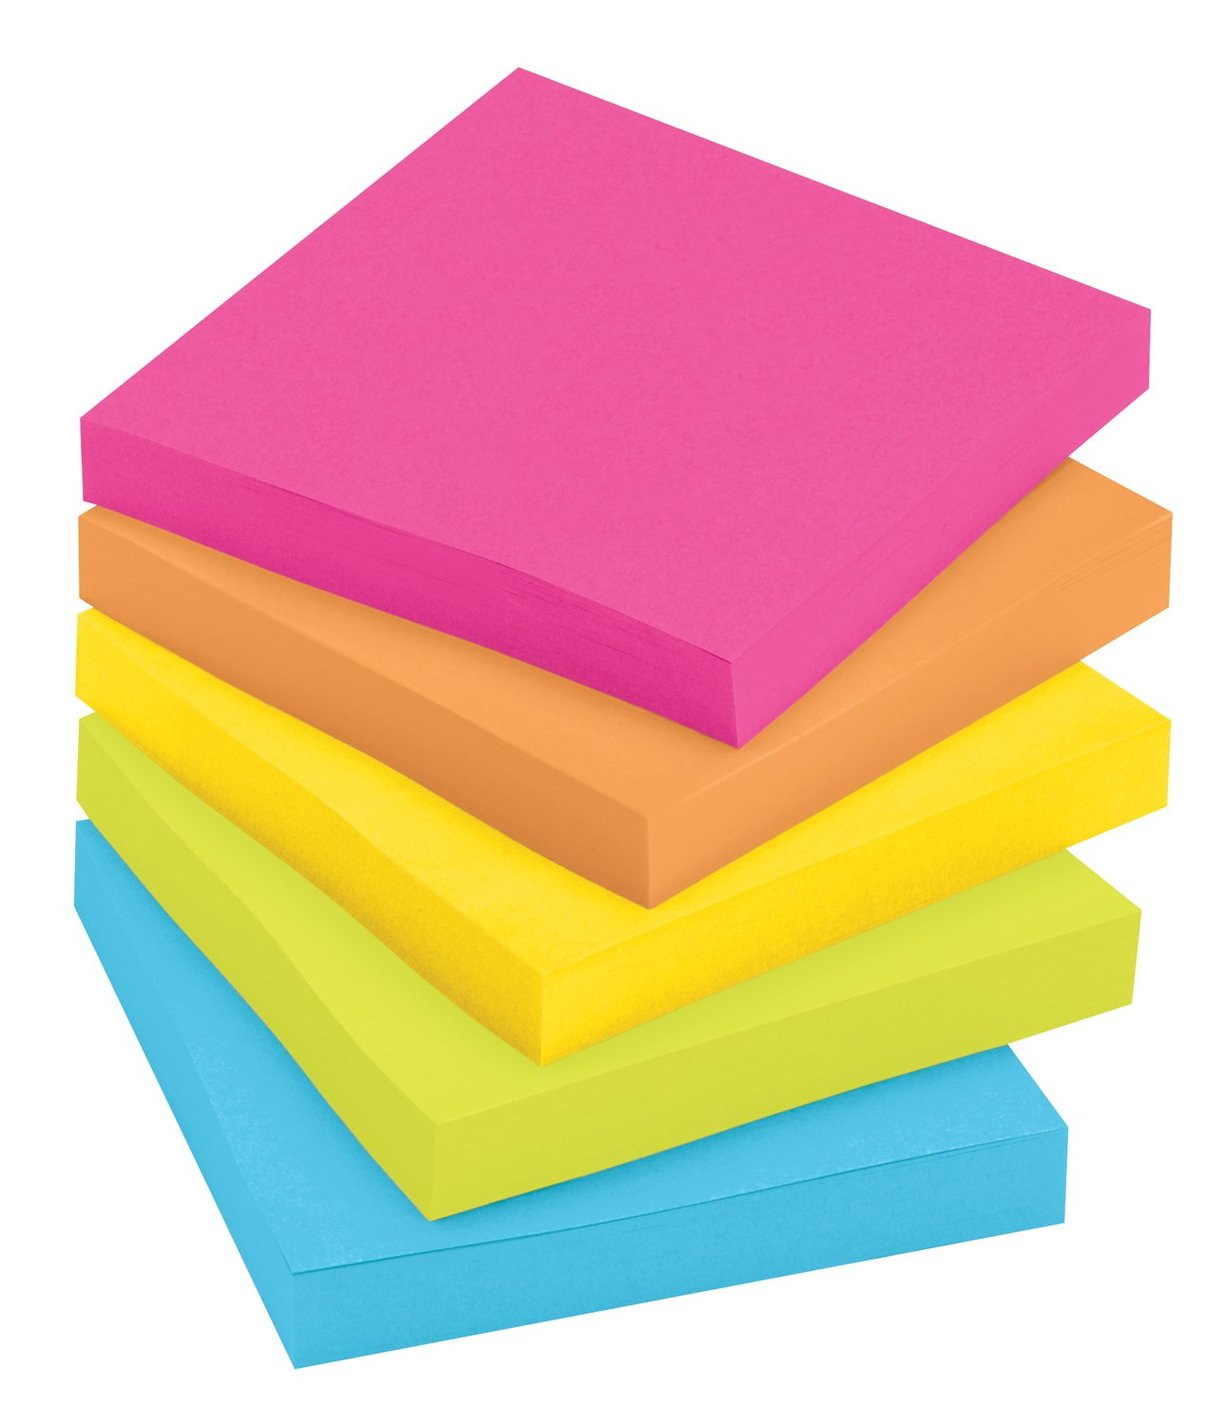 Pictures Of Post It Notes - ClipArt Best